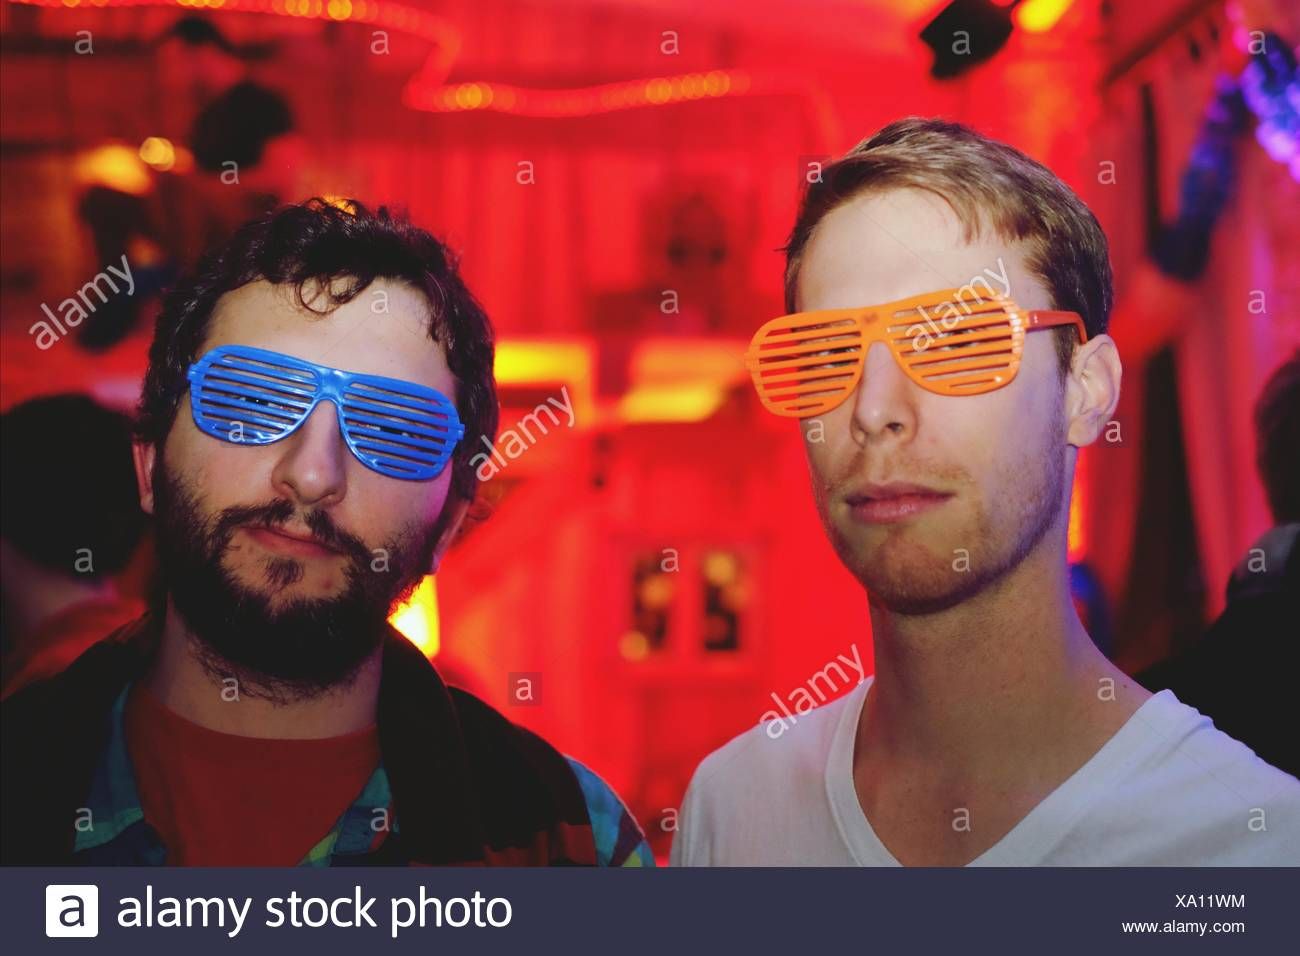 Portrait Of Friends Wearing Novelty Glasses - Stock Image